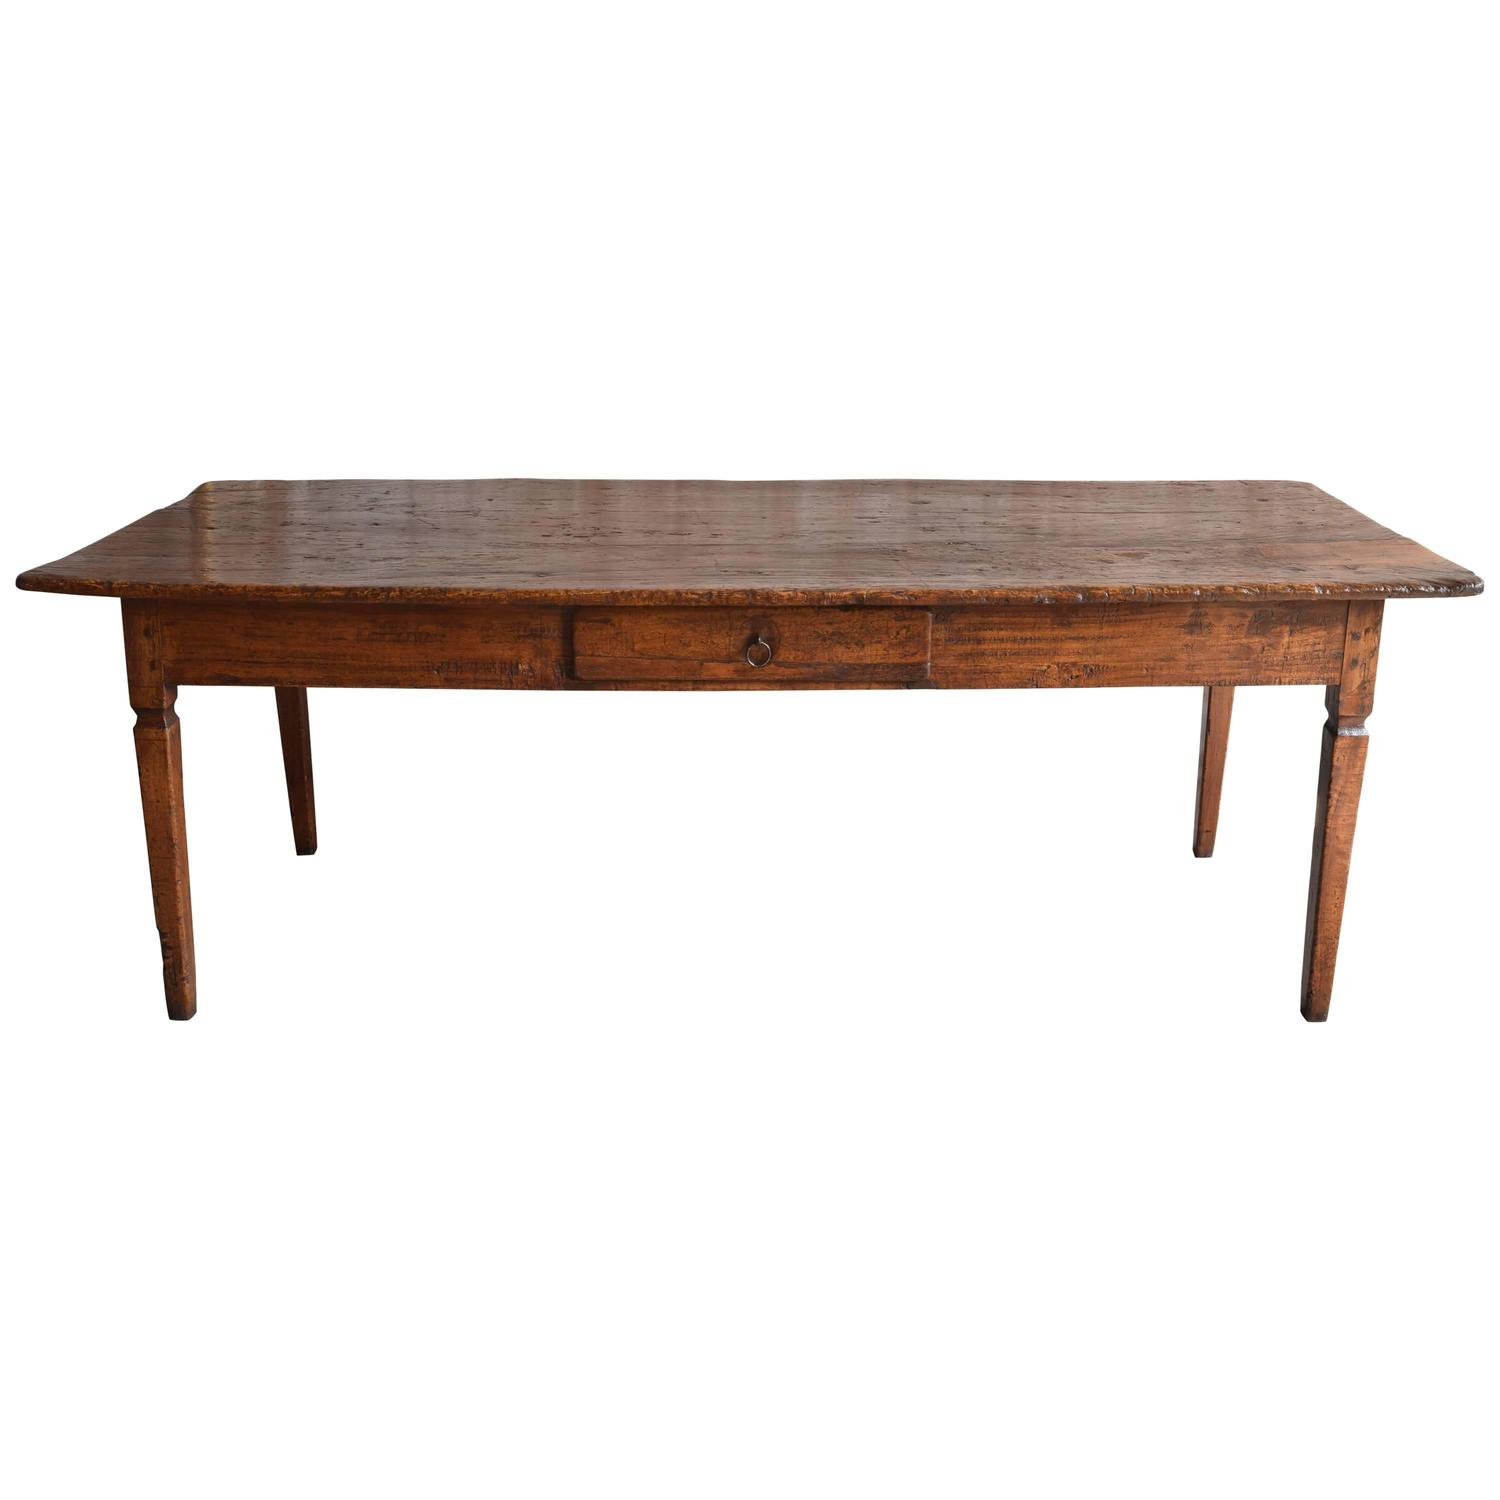 Italian Farm Table in Pioppo Wood circa 1800 at 1stdibs : 5000283z from www.1stdibs.com size 1500 x 1500 jpeg 57kB